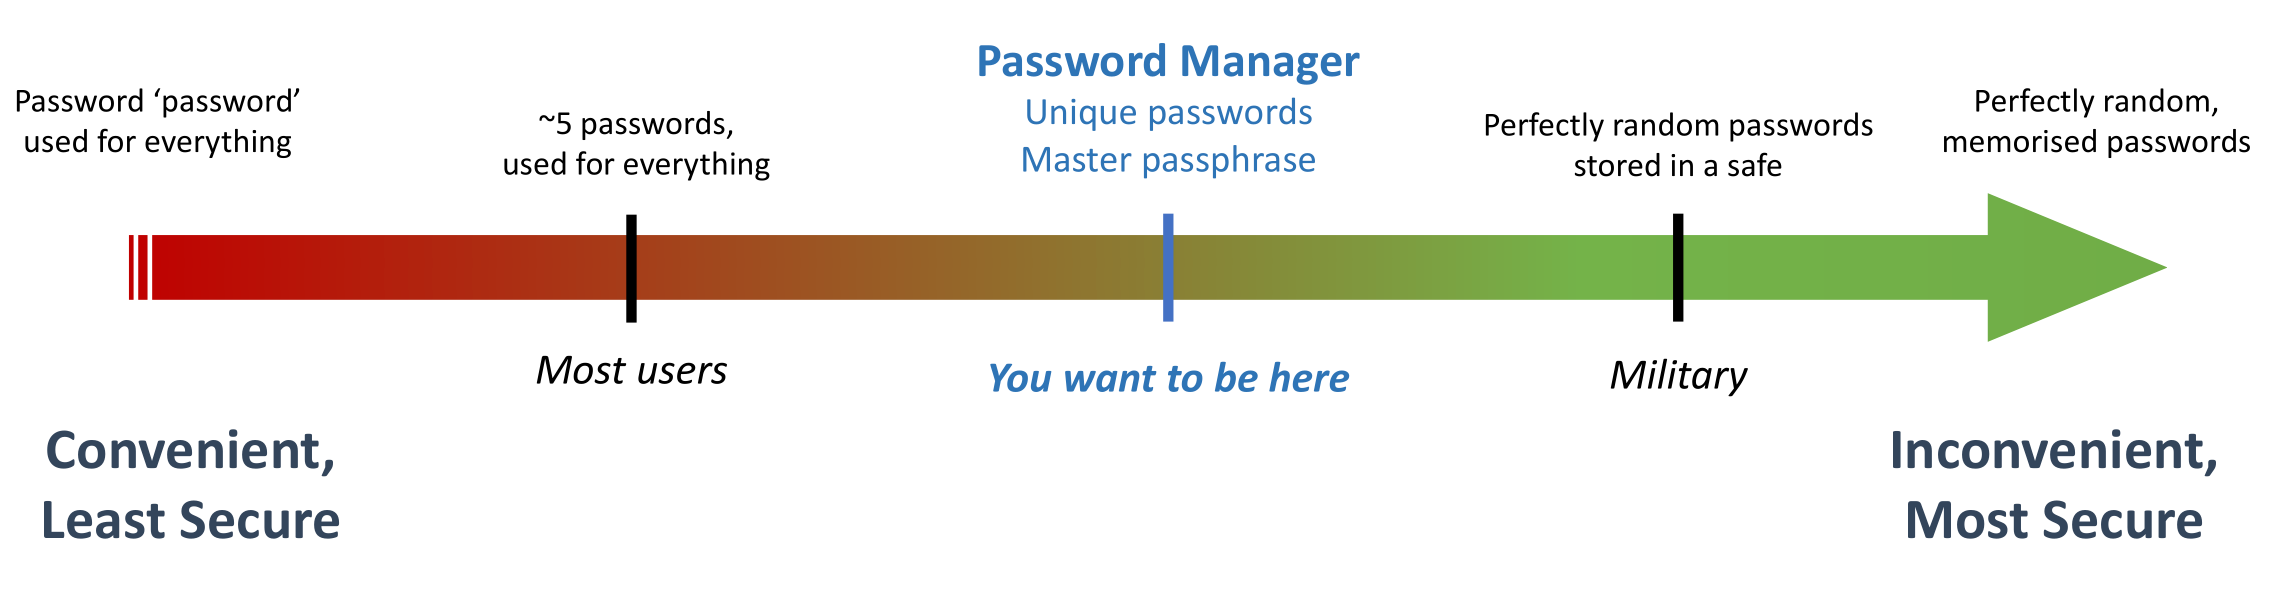 Security trade-offs in password practices